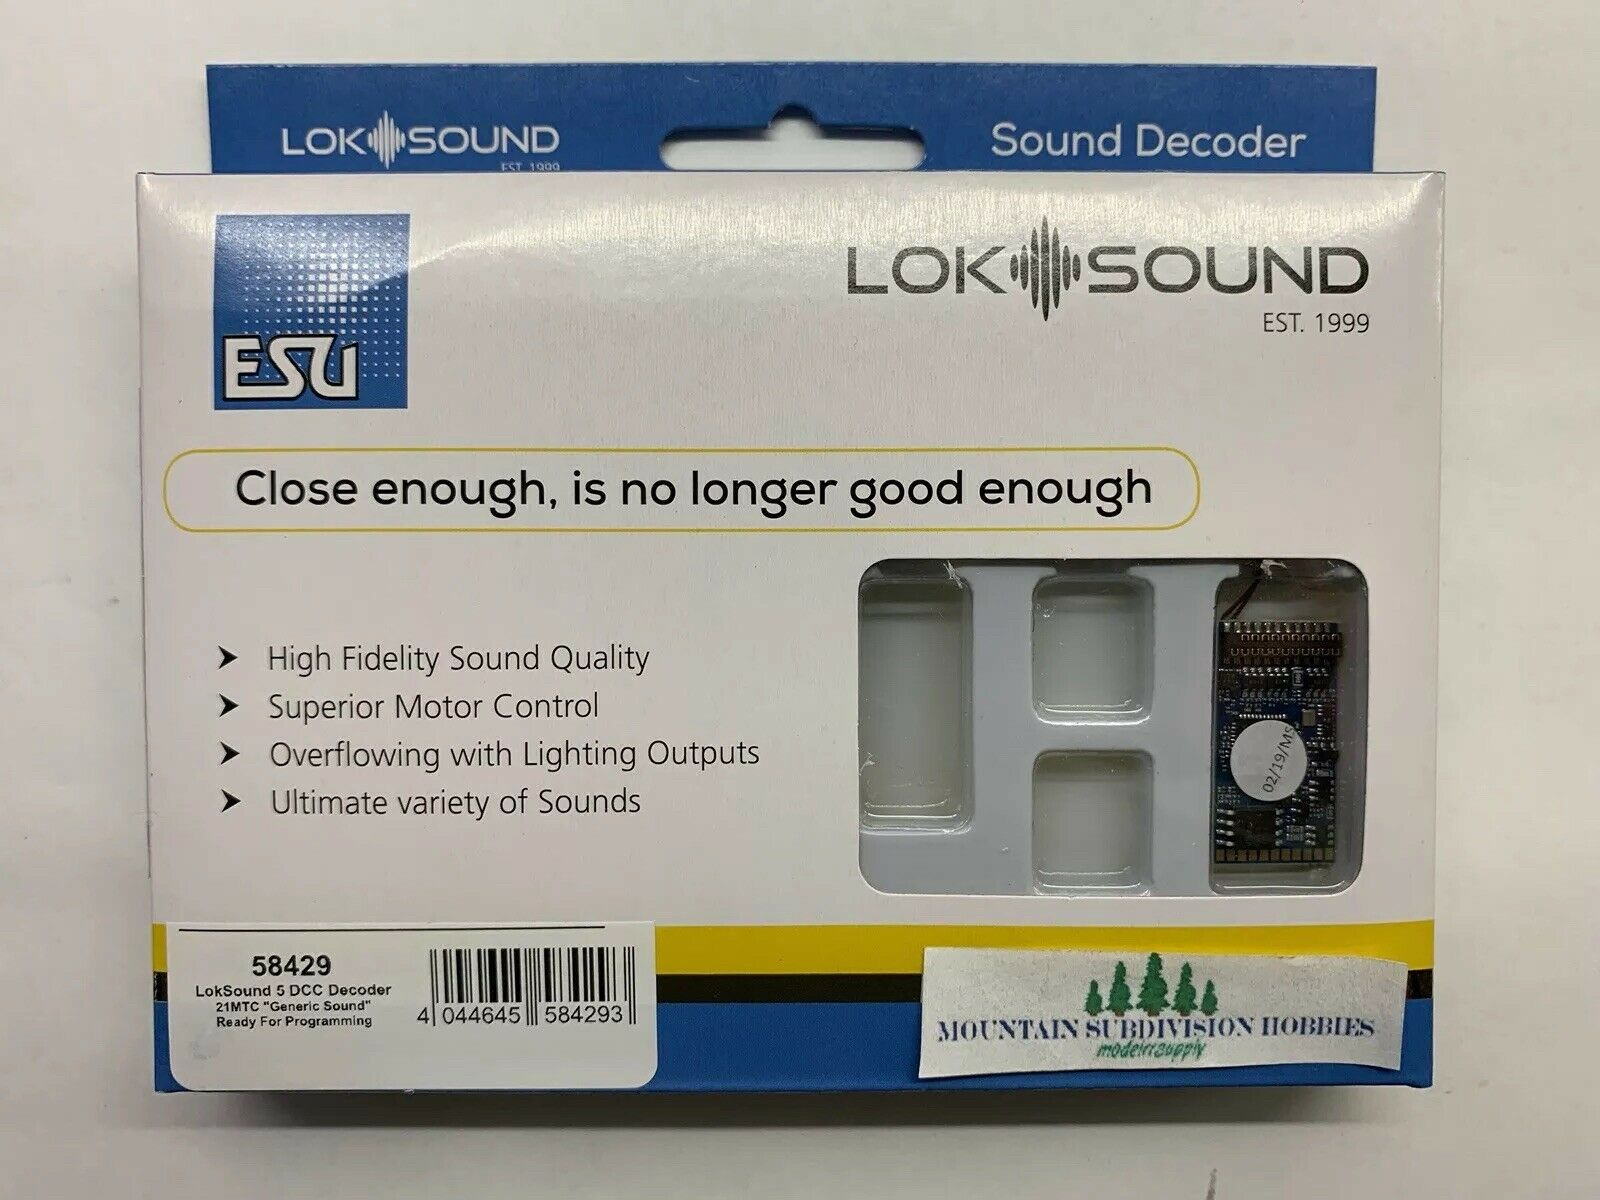 ESU 58429 Loke Sound 5 DCC Ljudavkodare - Brand New - modellllerRRSUPPPLY  5 Offer